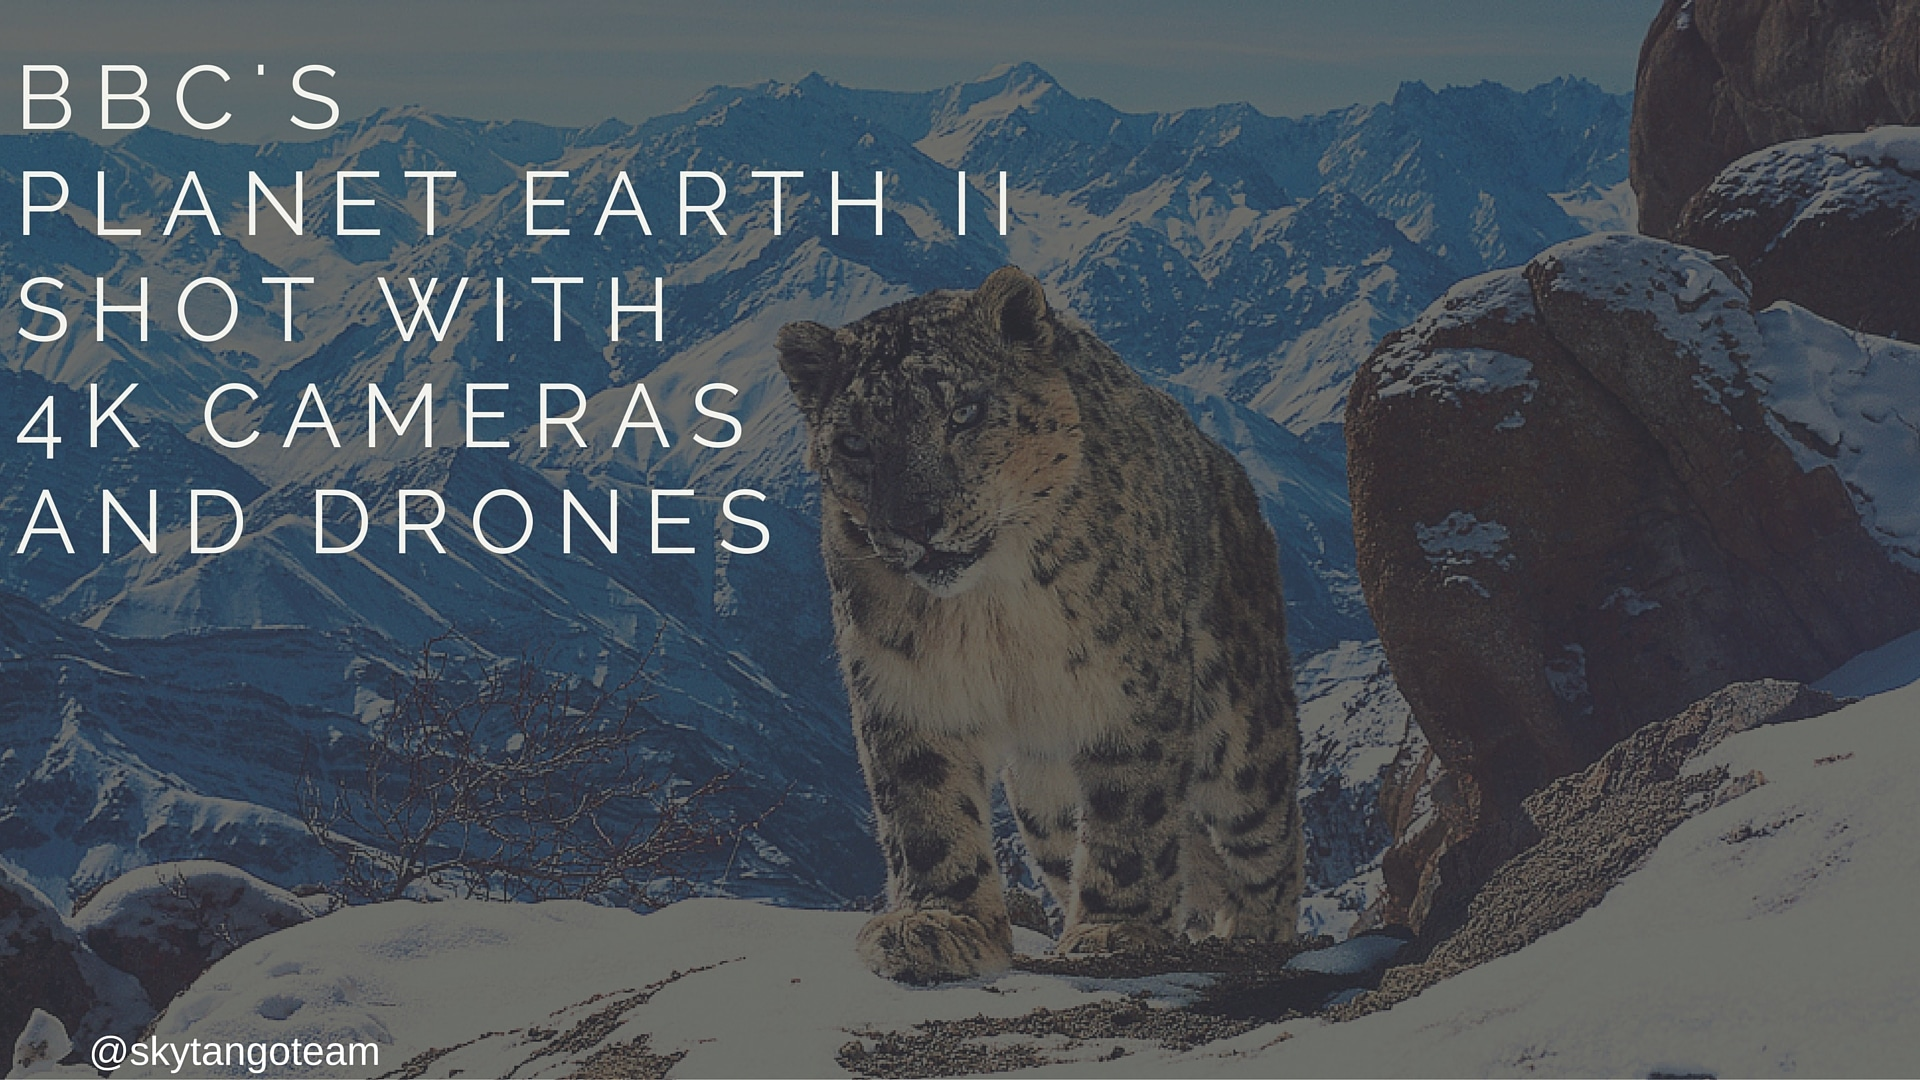 BBC's Planet Earth II Shot With 4K Cameras And Drones